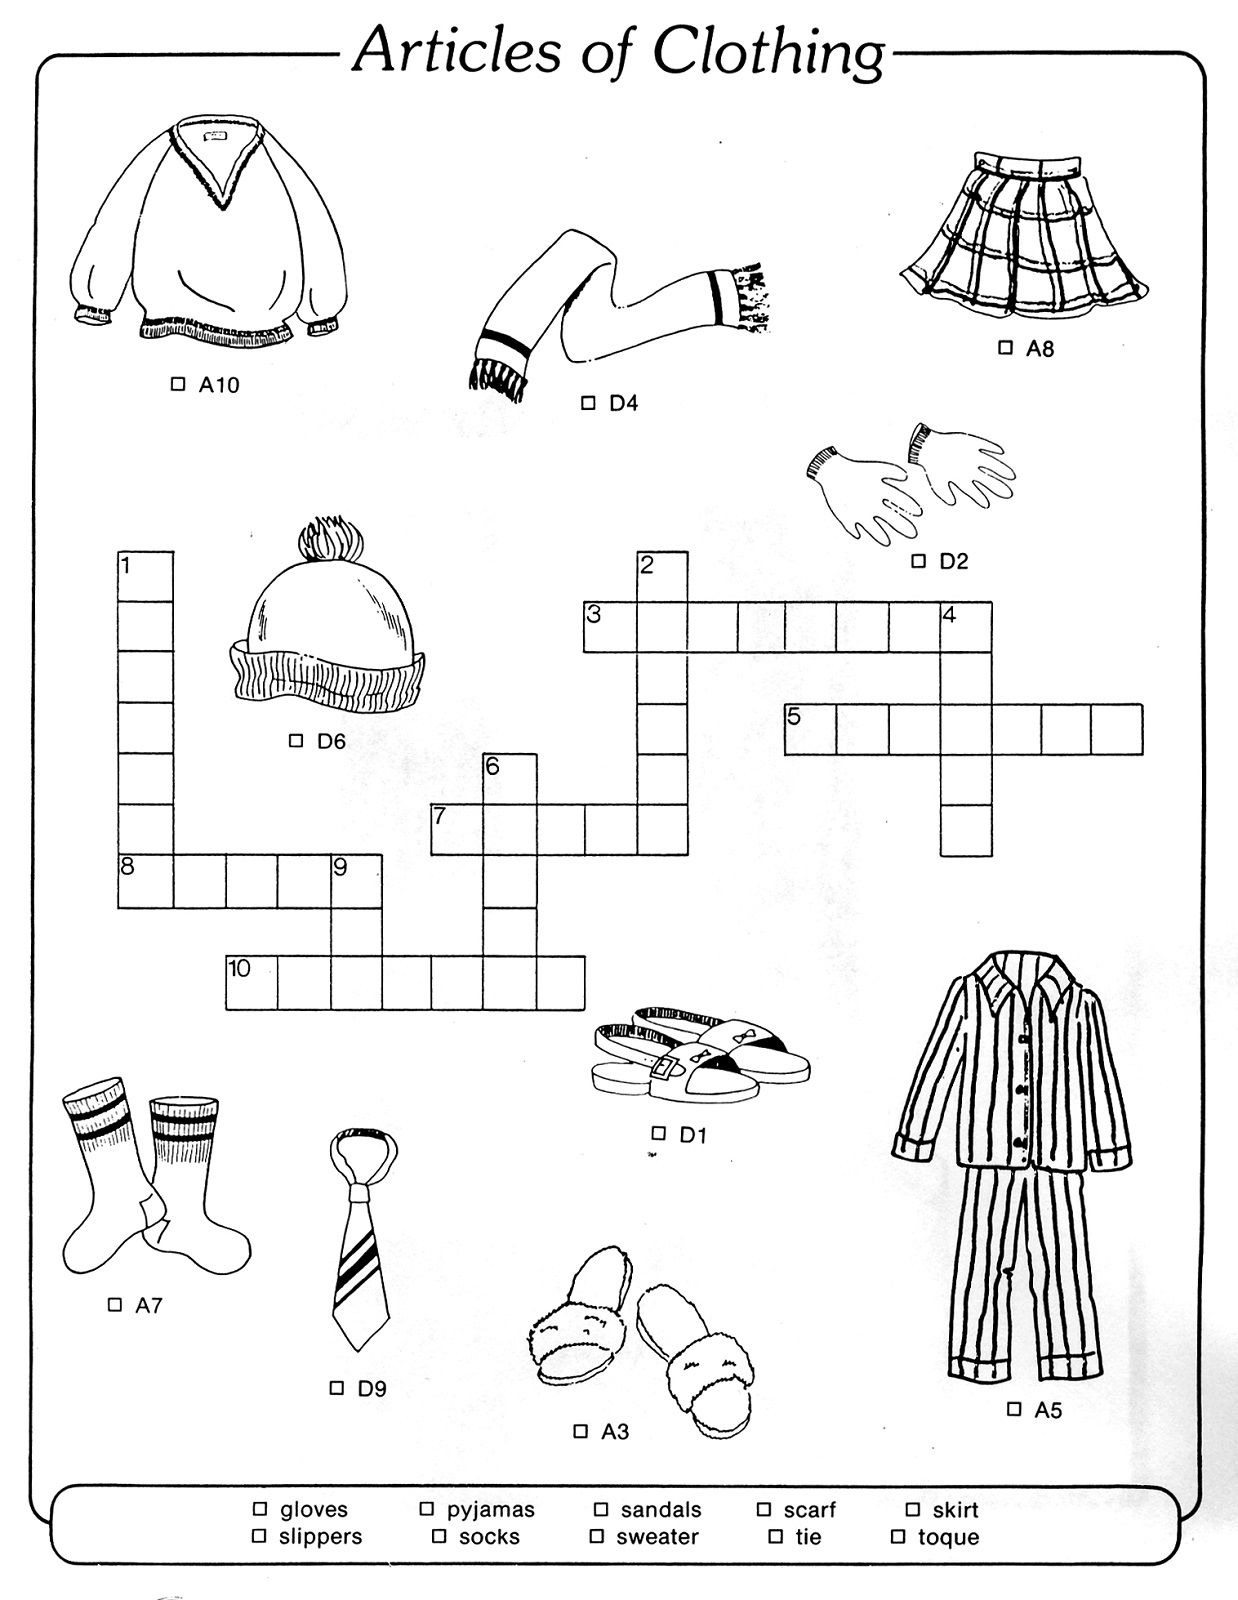 Crossword To Practice Clothes